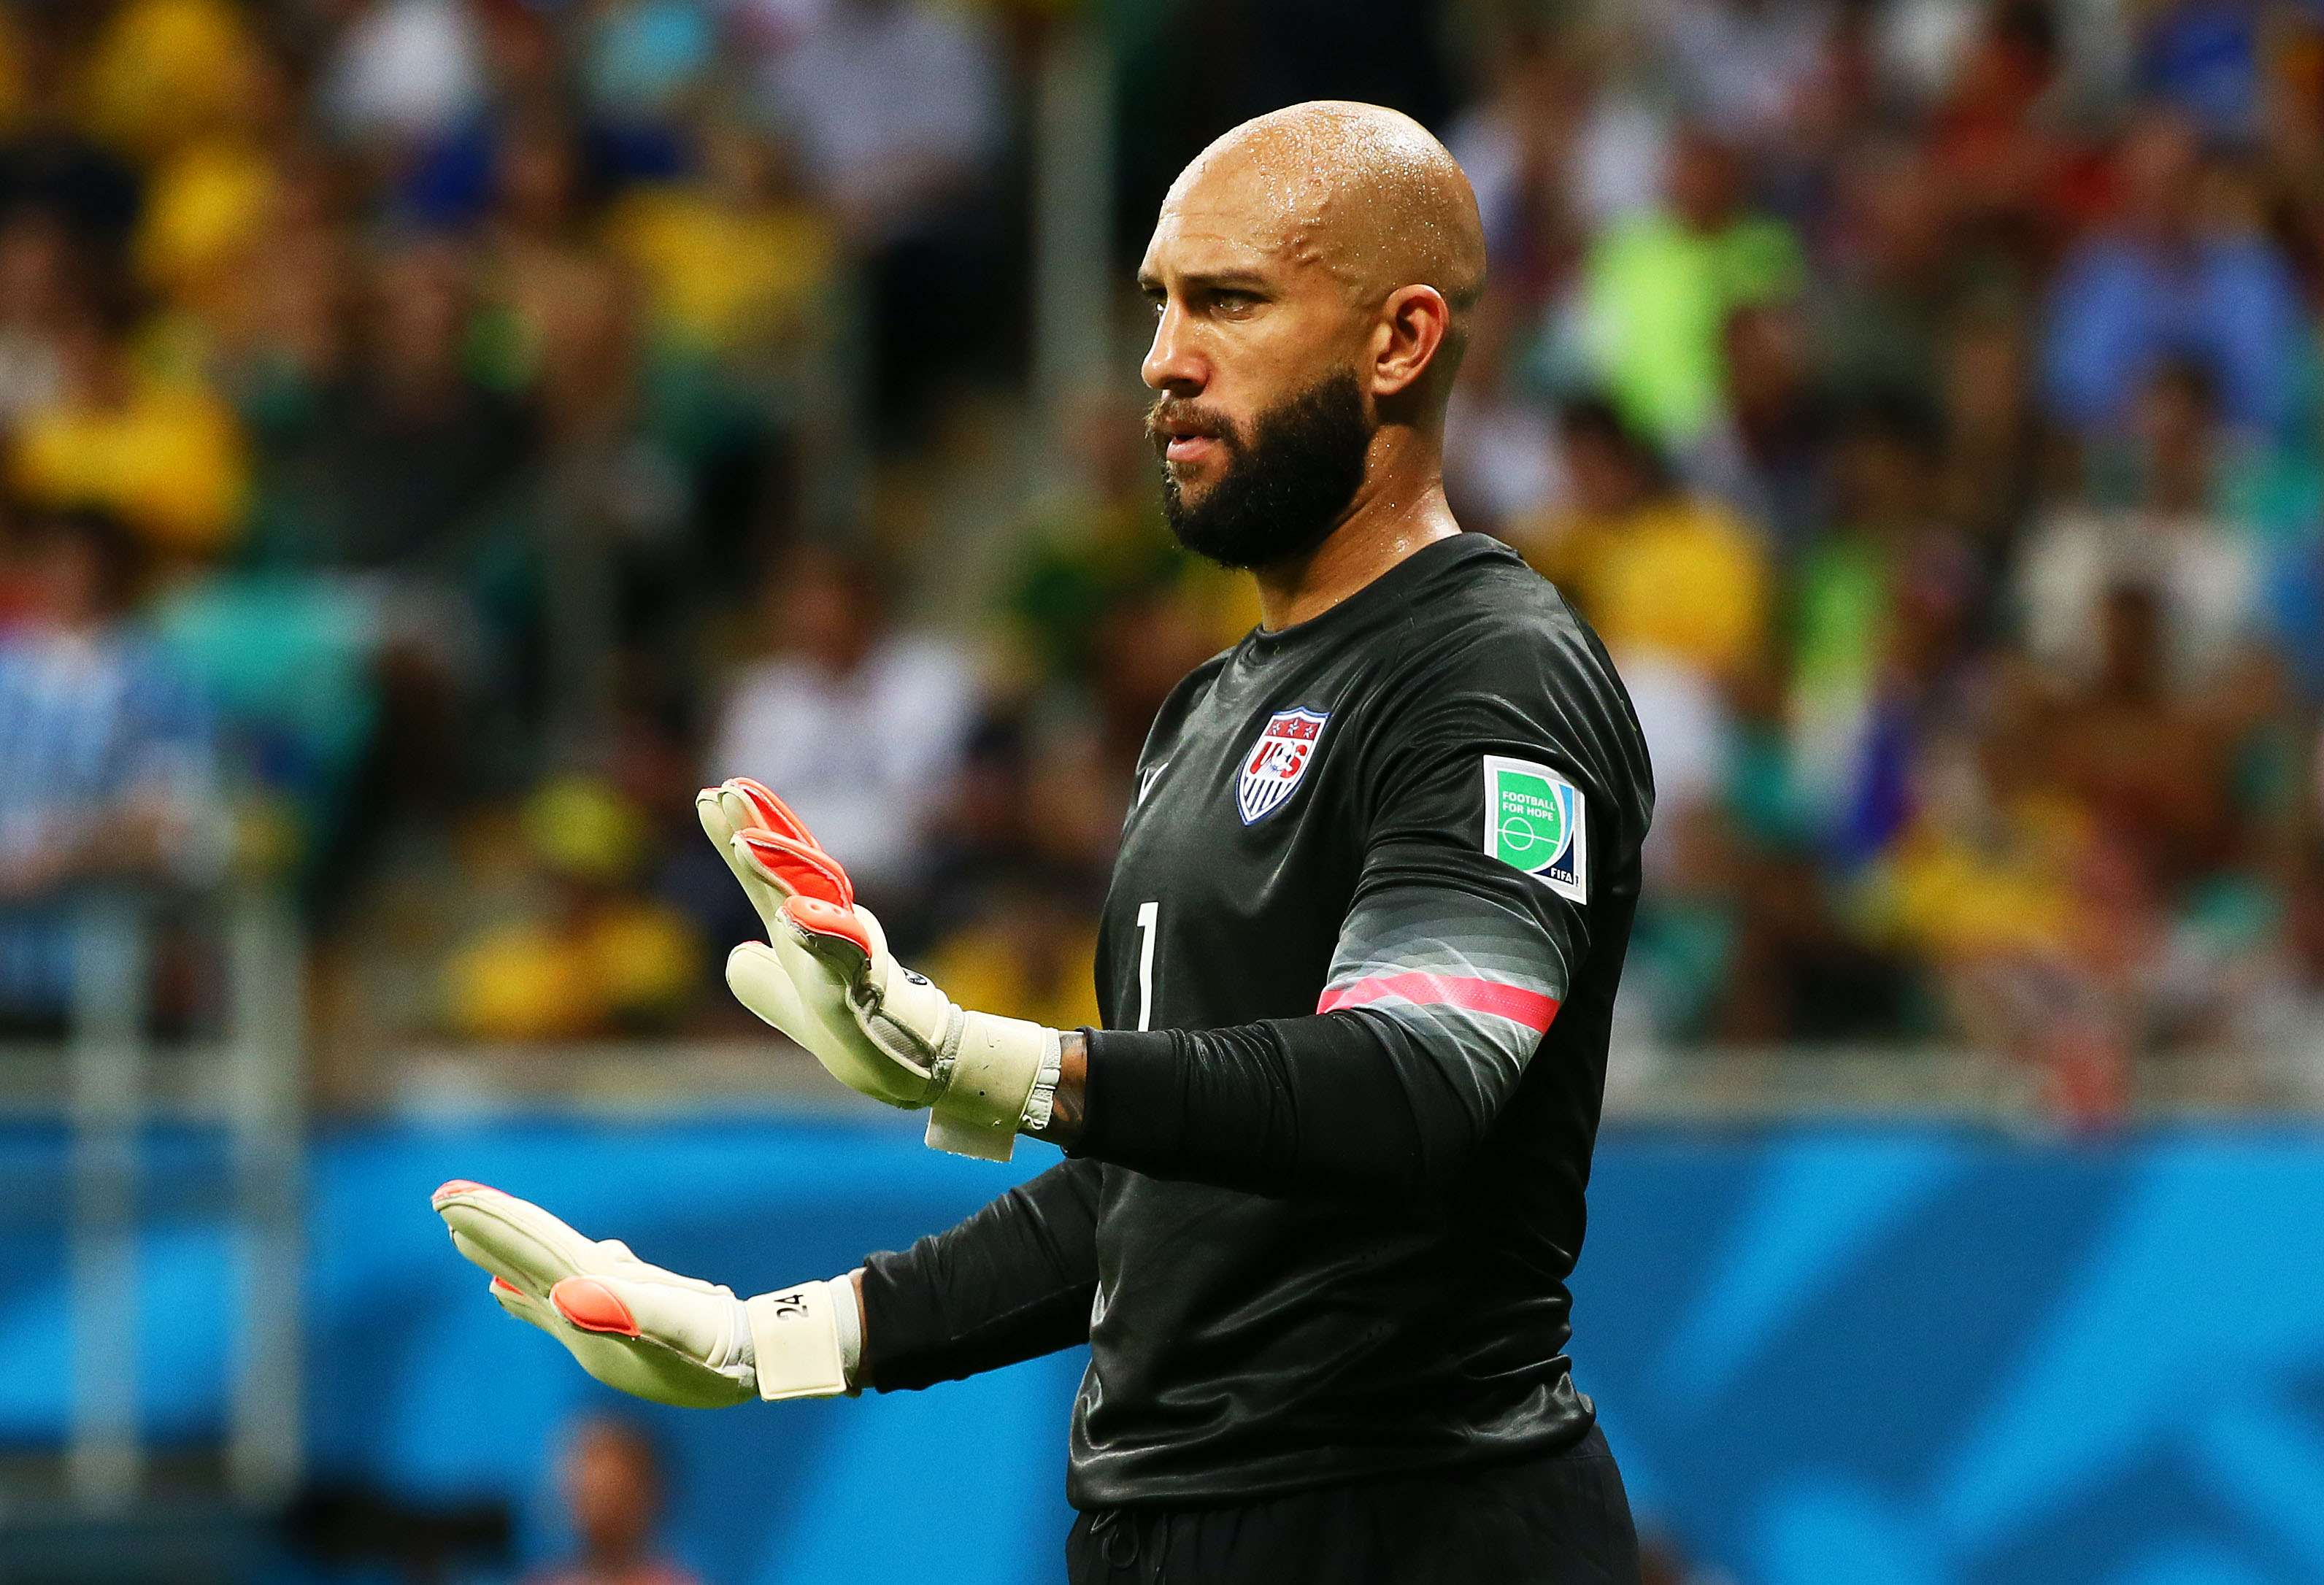 Tim Howard vs. Belgium: Perhaps none were flashy, but the American goalkeeper still collected 16 saves in his team's overtime loss. The fact that he made the saves look 'easy' is a credit to his great positioning throughout the game. Foto: Getty Images